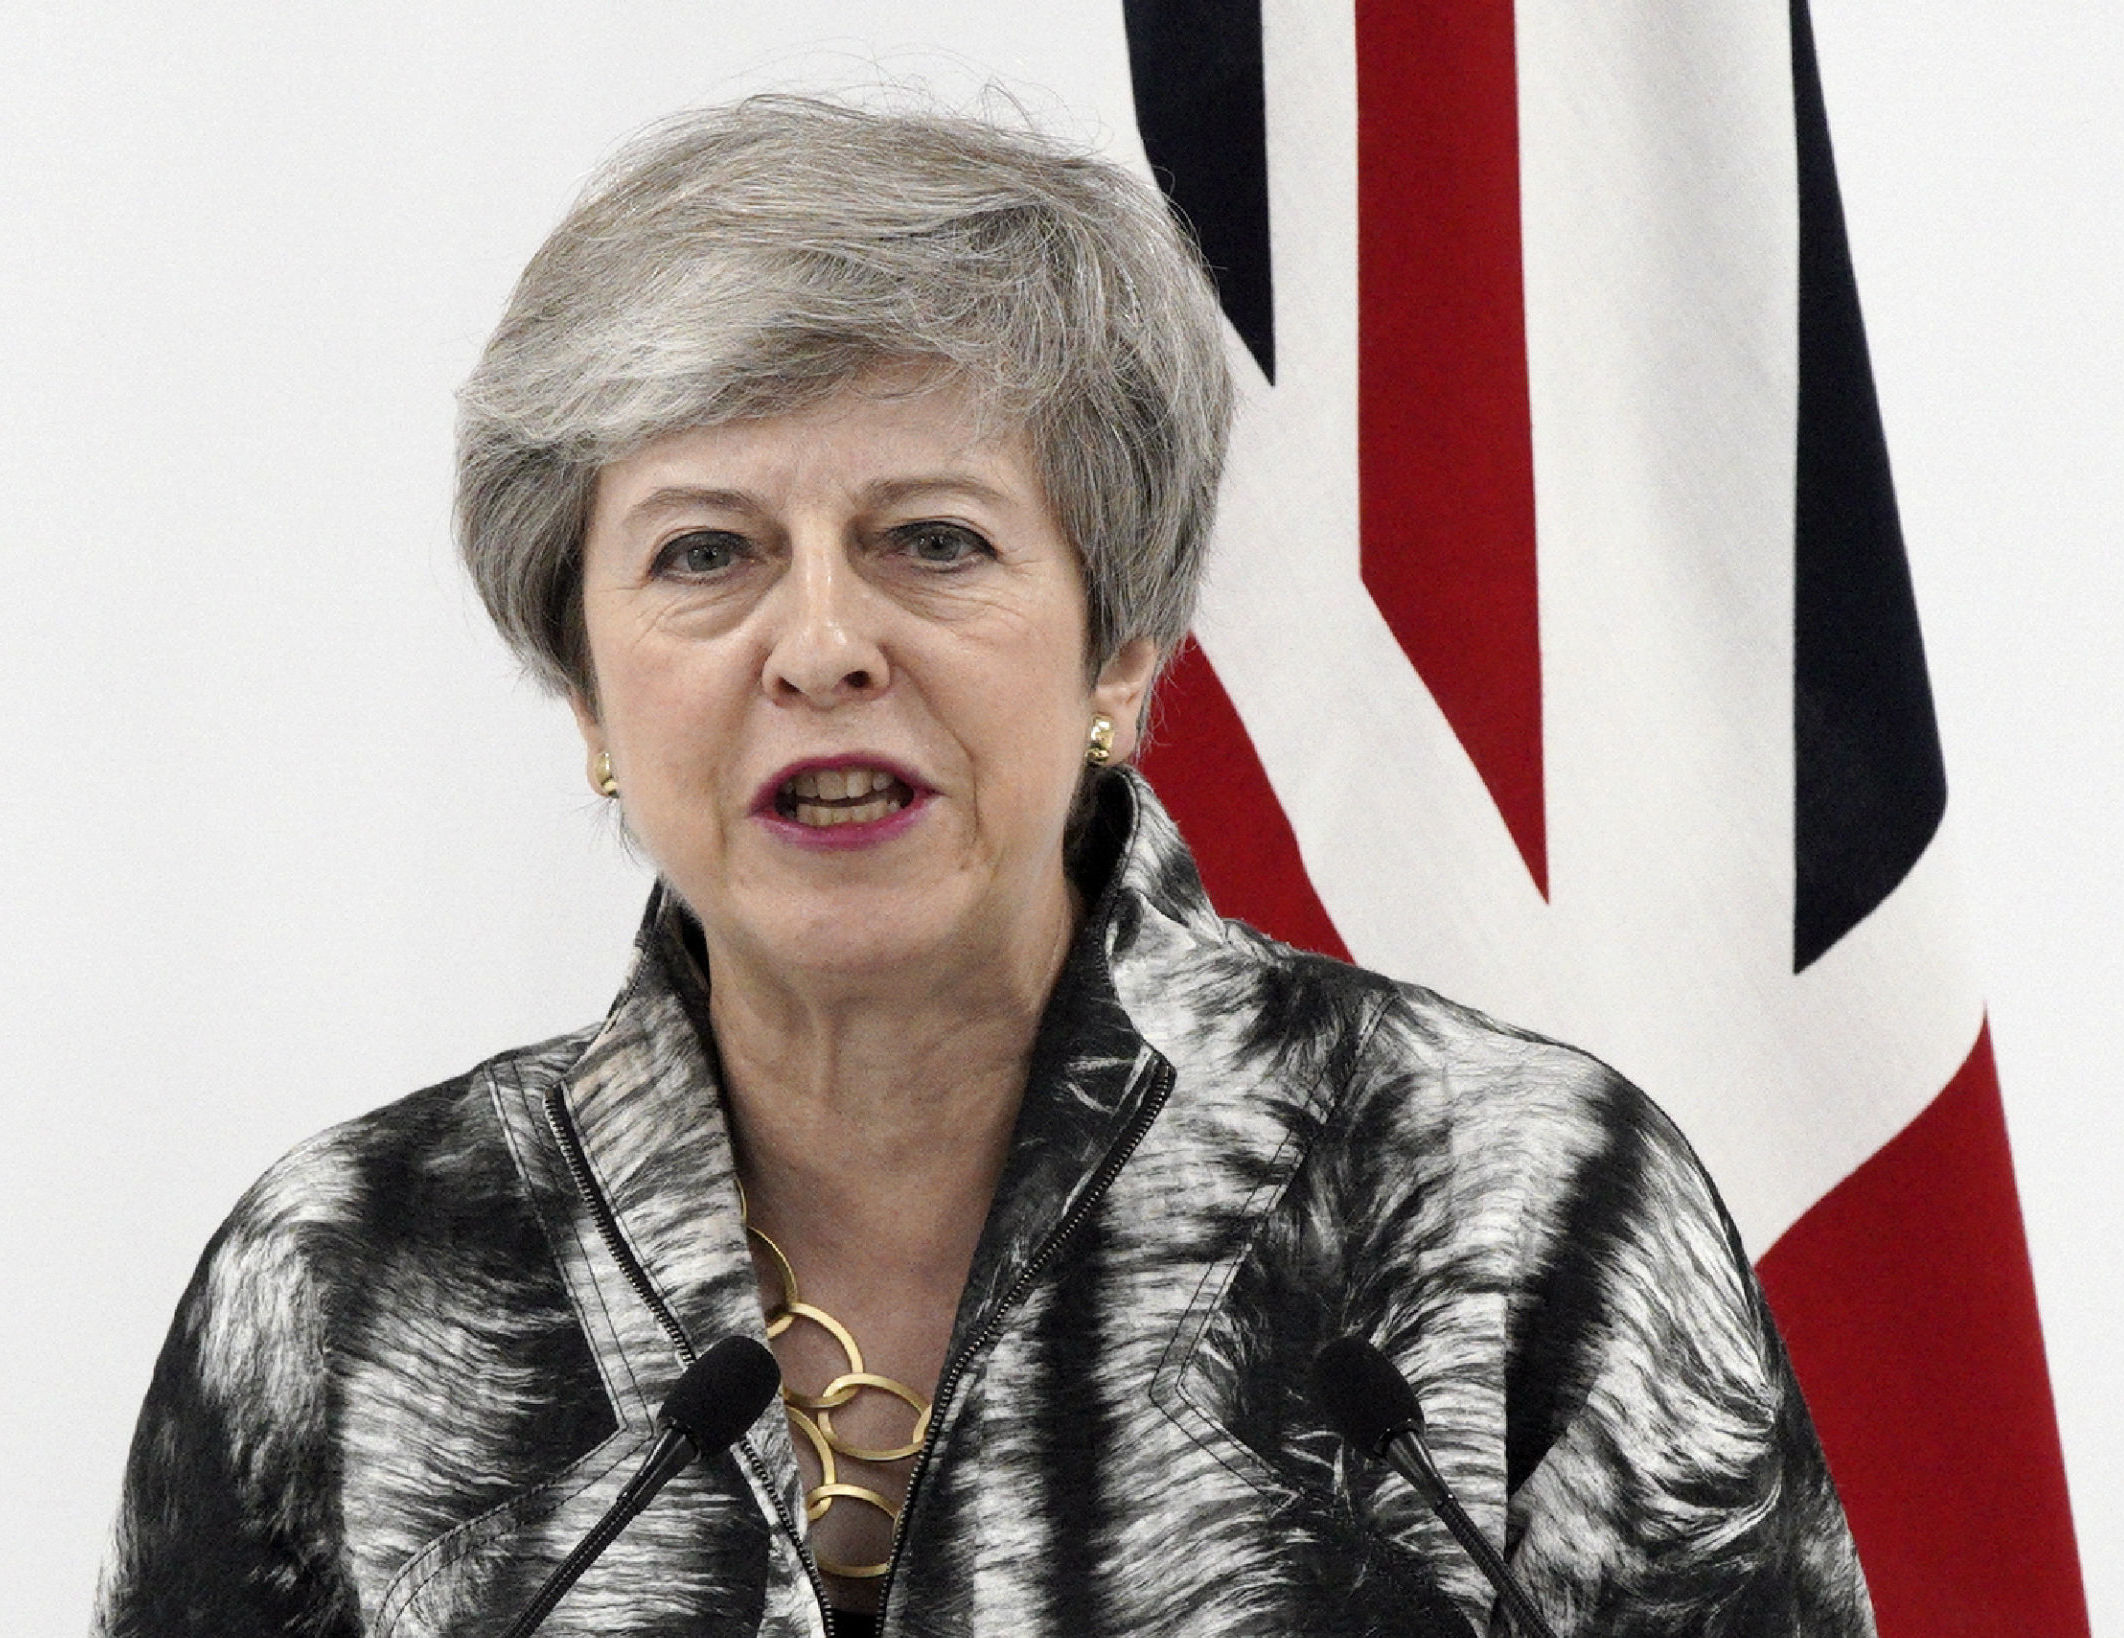 British Prime Minister Theresa May speaks during a press conference after the G-20 summit in Osaka, western Japan Saturday, June 29, 2019